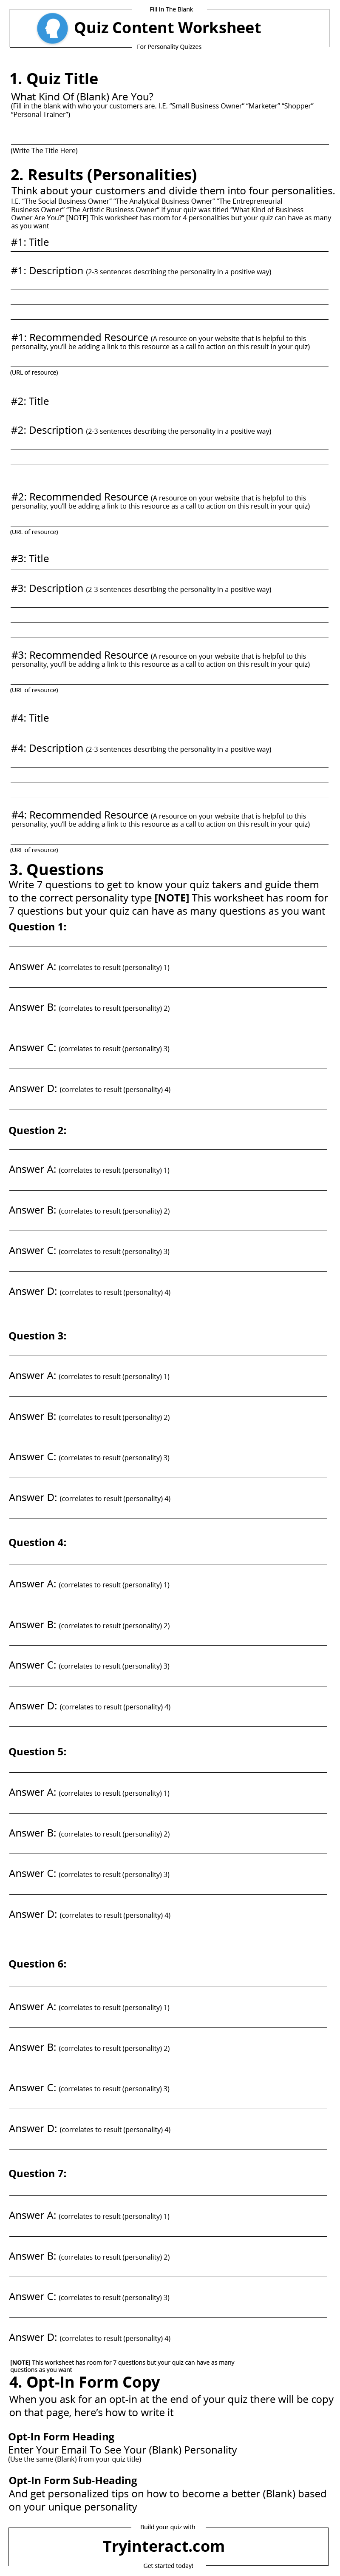 Personality Quiz Content Worksheet Interact Help Center